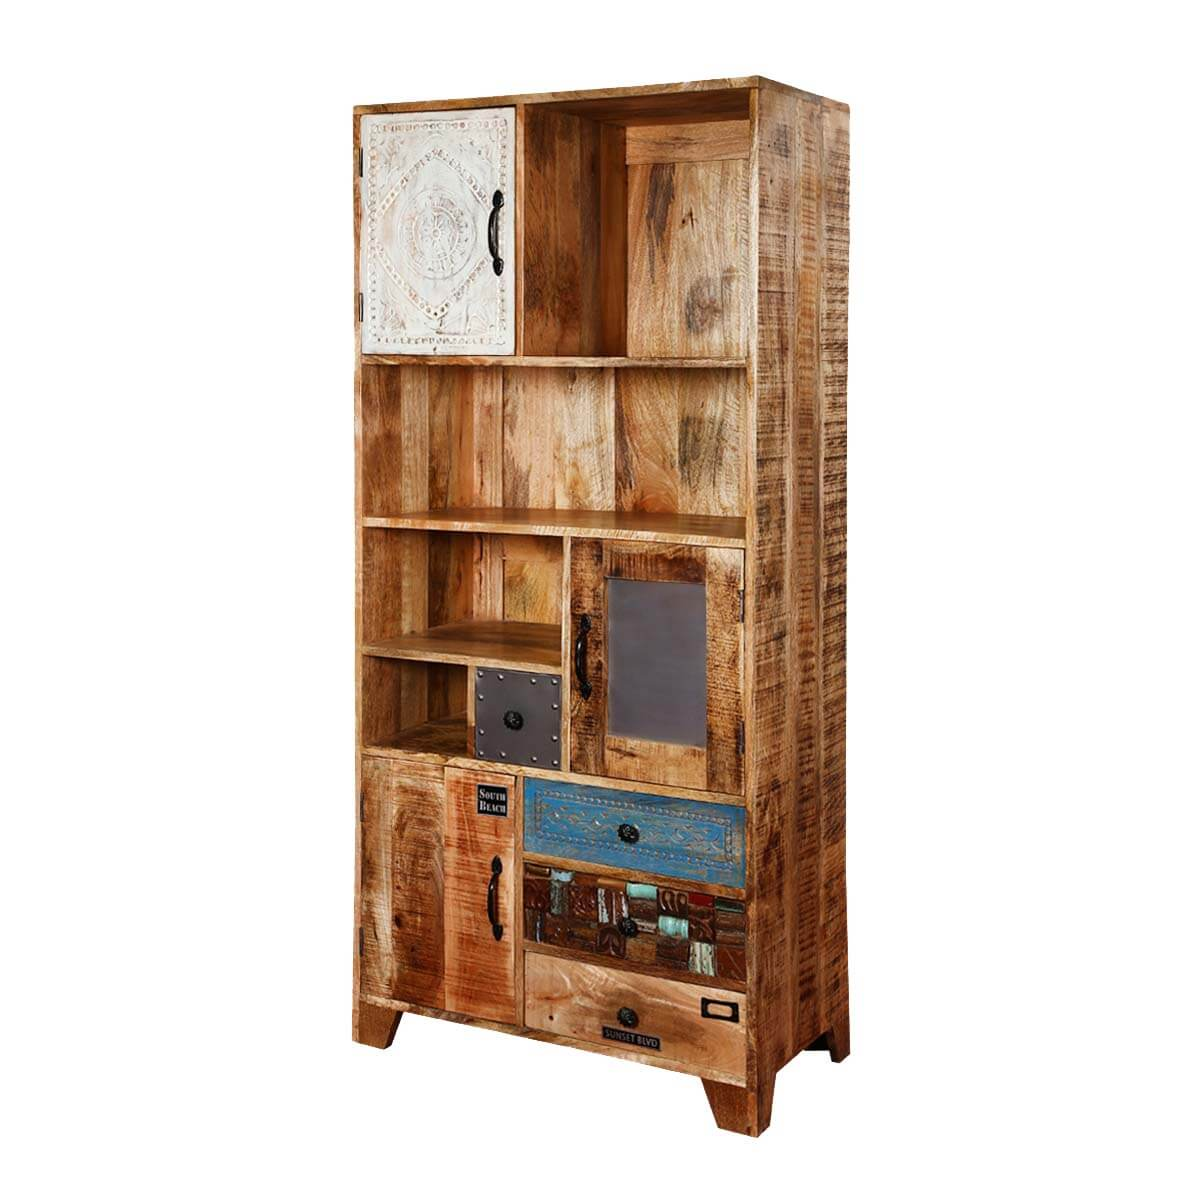 Arkansas Distinctive Iron and Mango Wood Rustic Storage Accent Cabinet